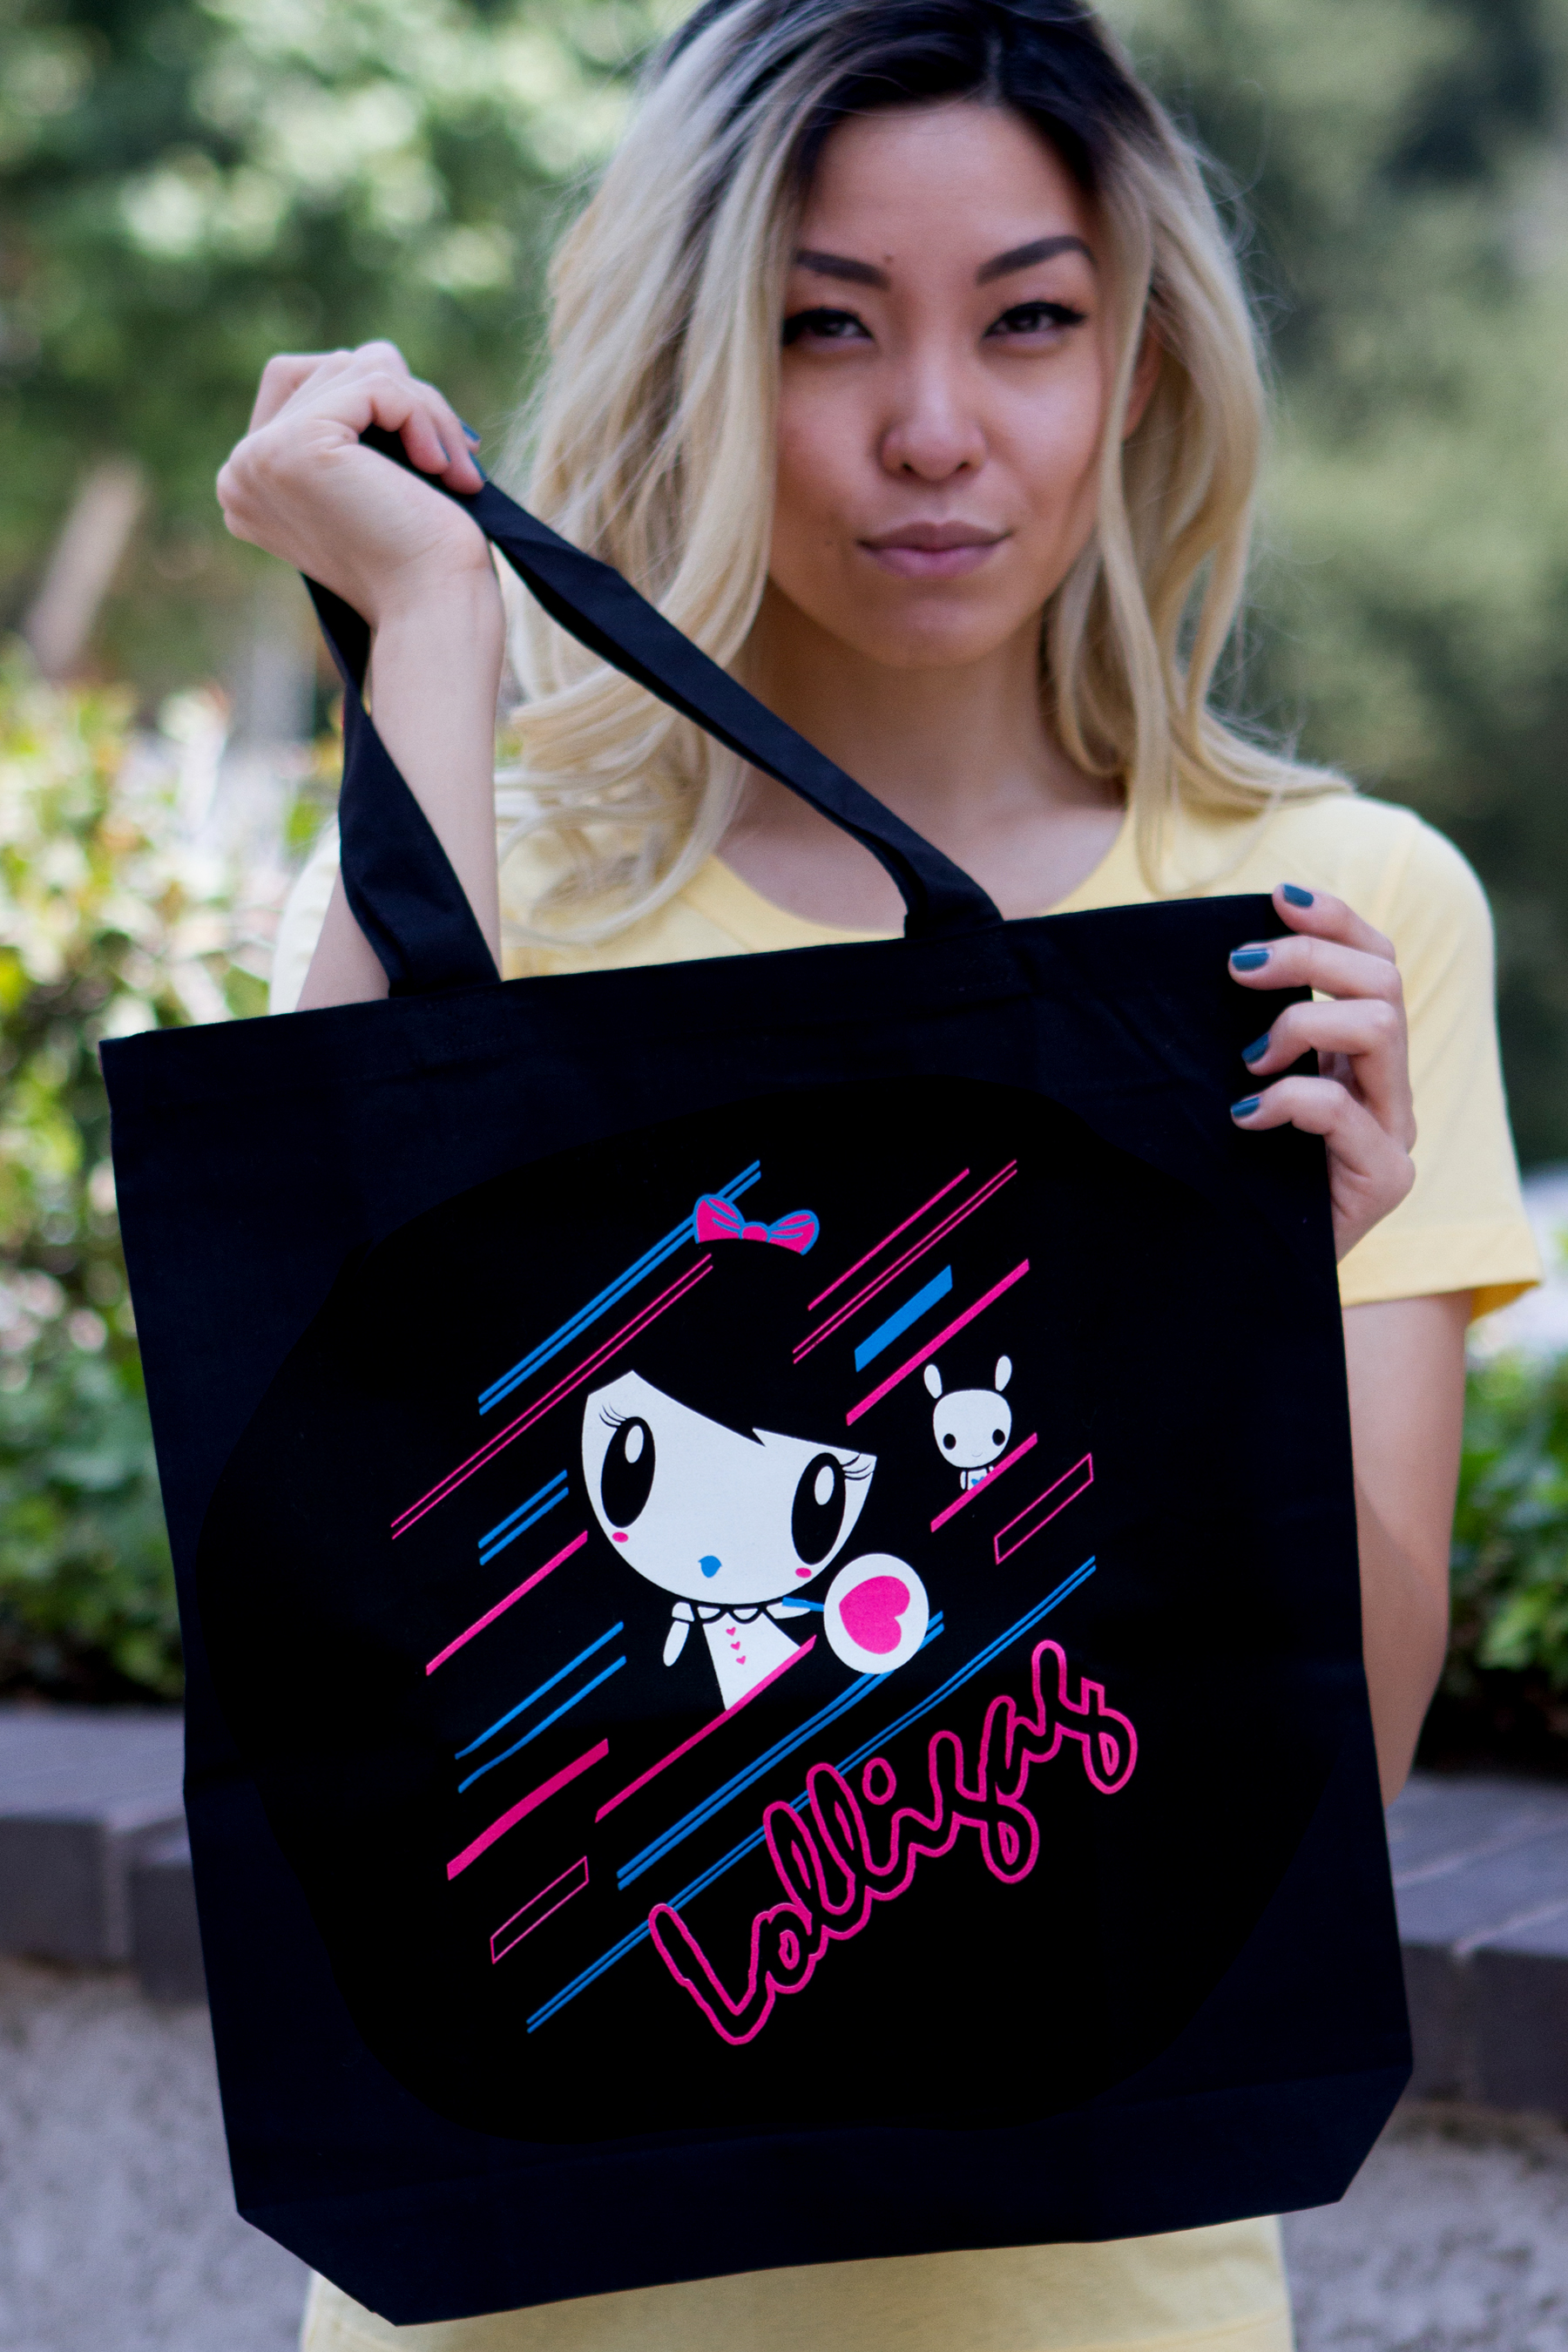 Woman holding the Electric Lolligag & Moot Tote